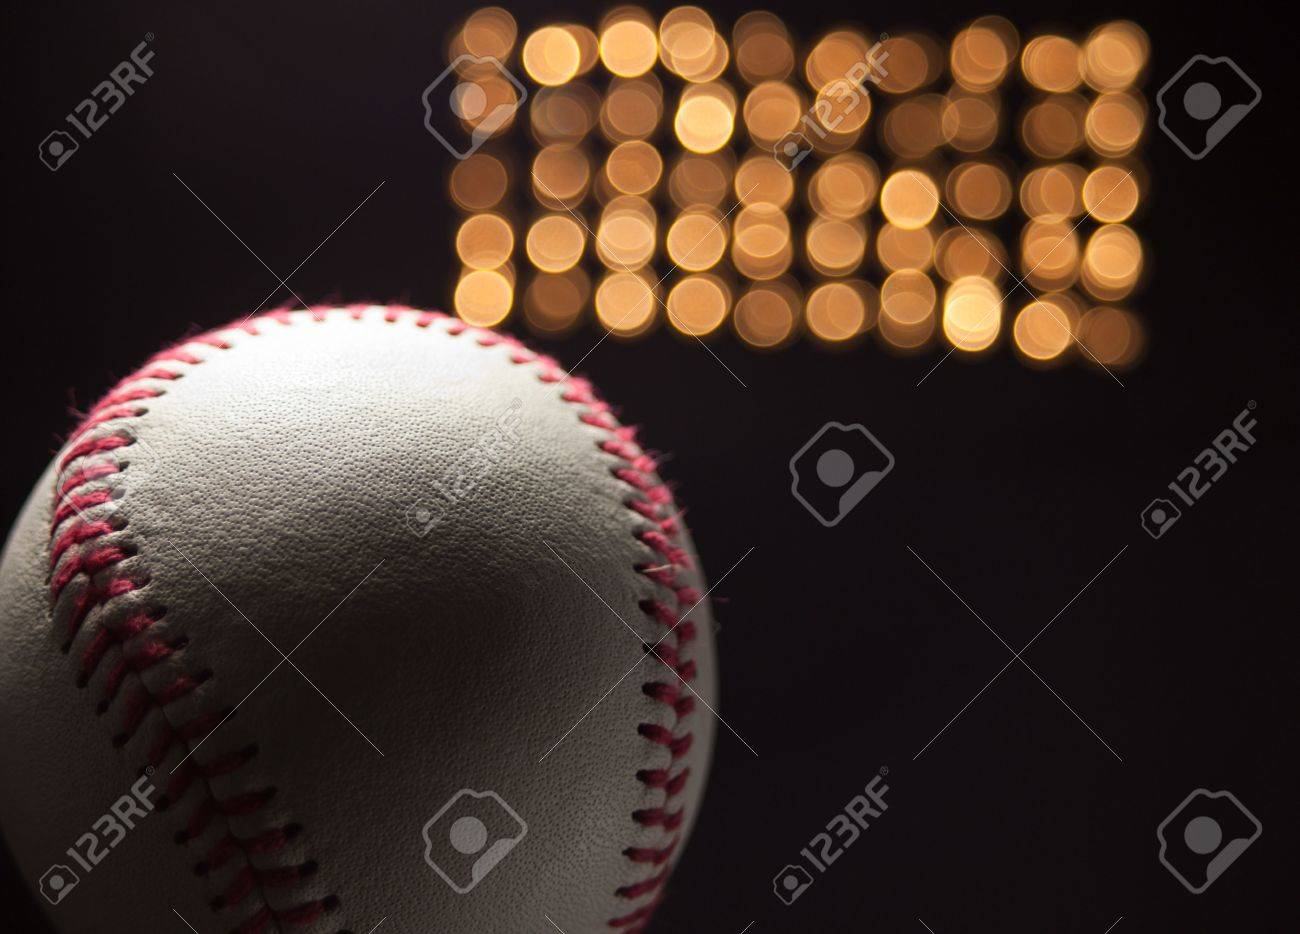 A close up of a new baseball at night with stadium lights in the back ground. Stock Photo - 5100111